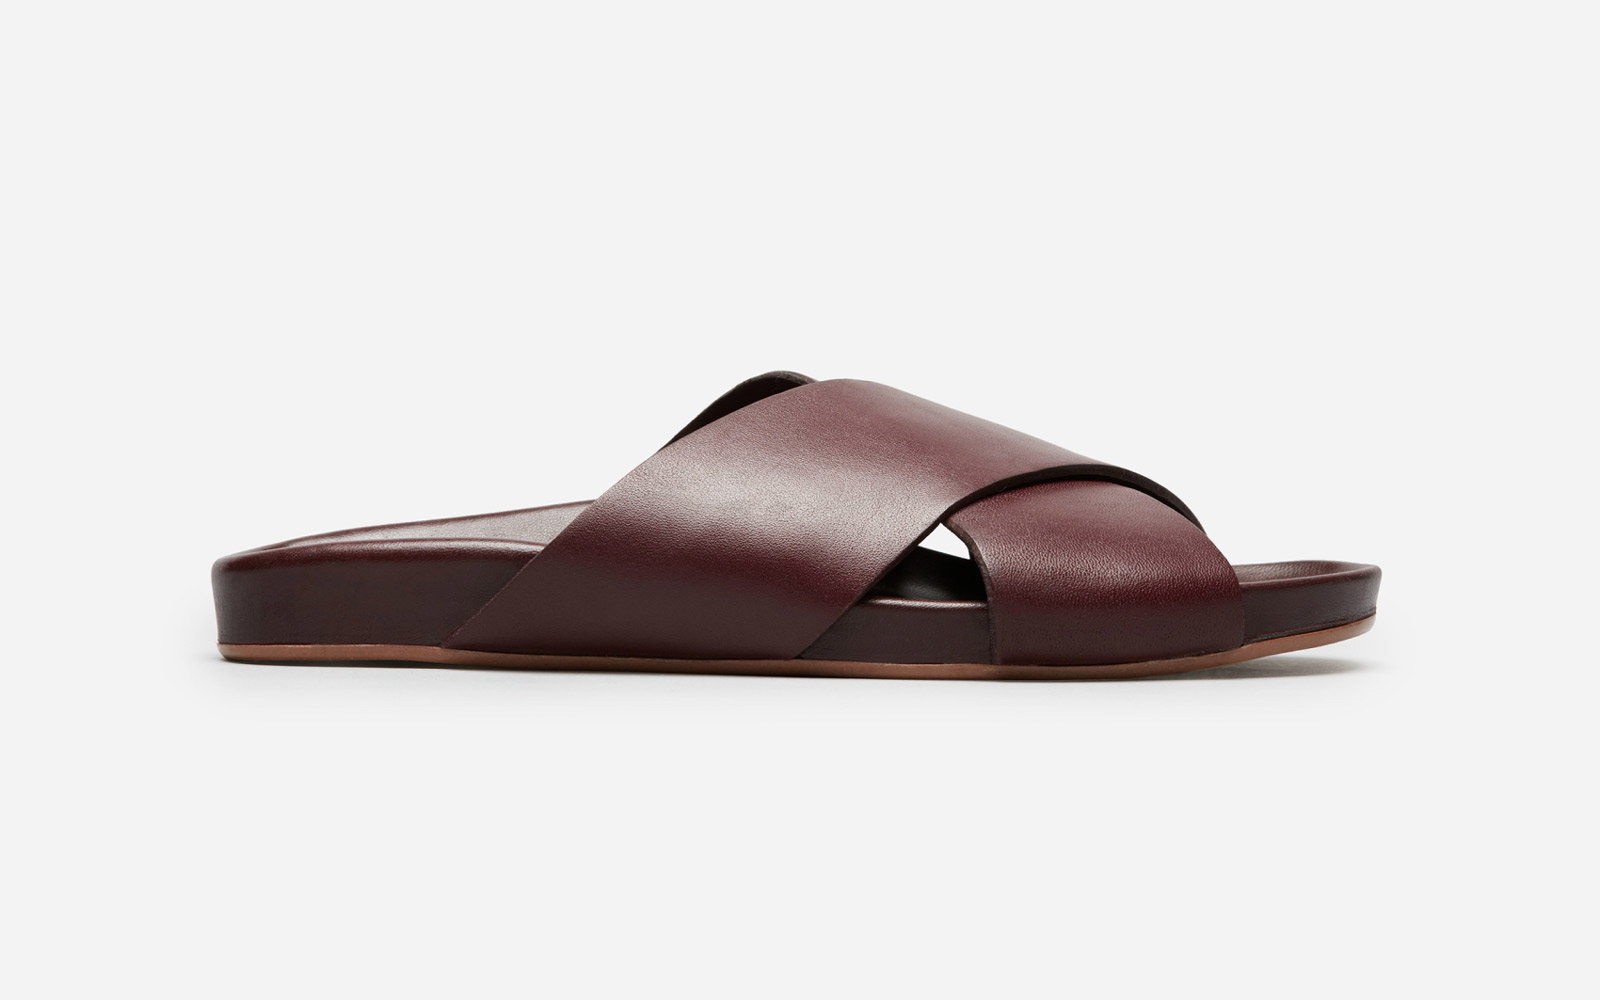 everlane arch support shoes for women